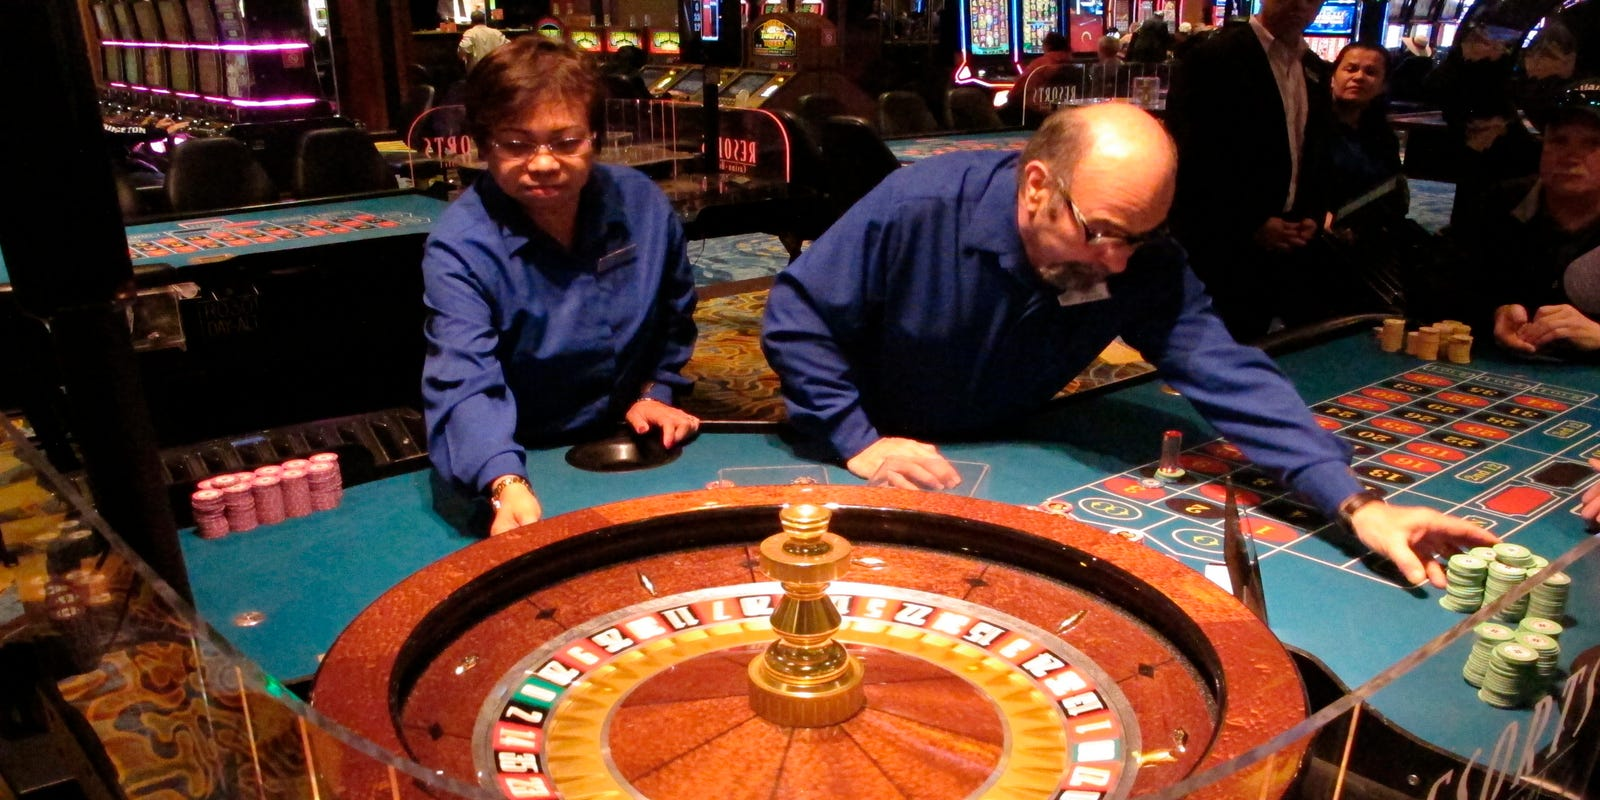 NJ casinos take 21% decline in revenue since reopening last month